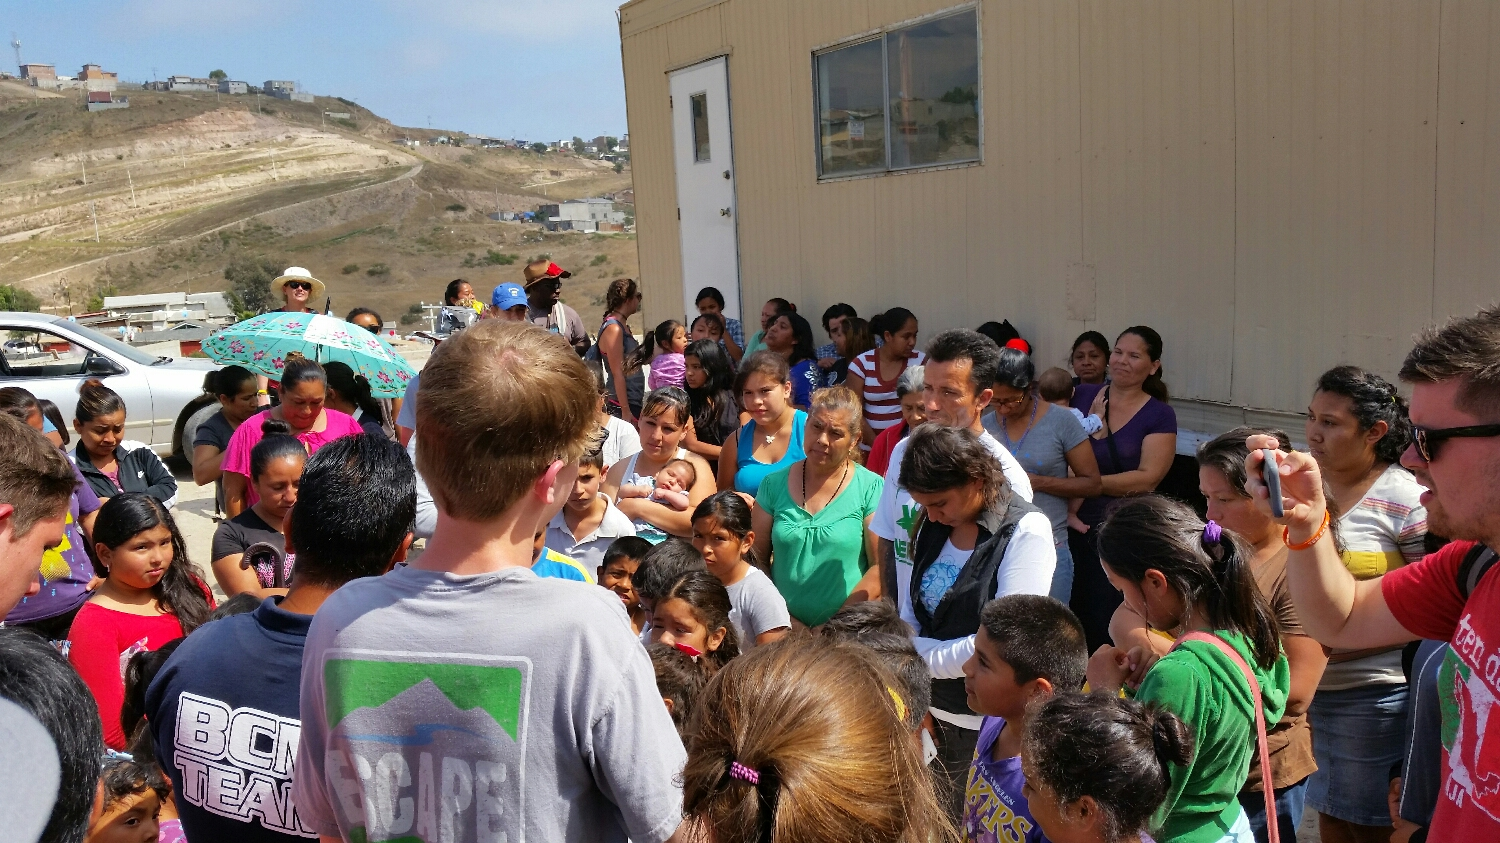 Caleb sharing the gospel message to a group of locals.